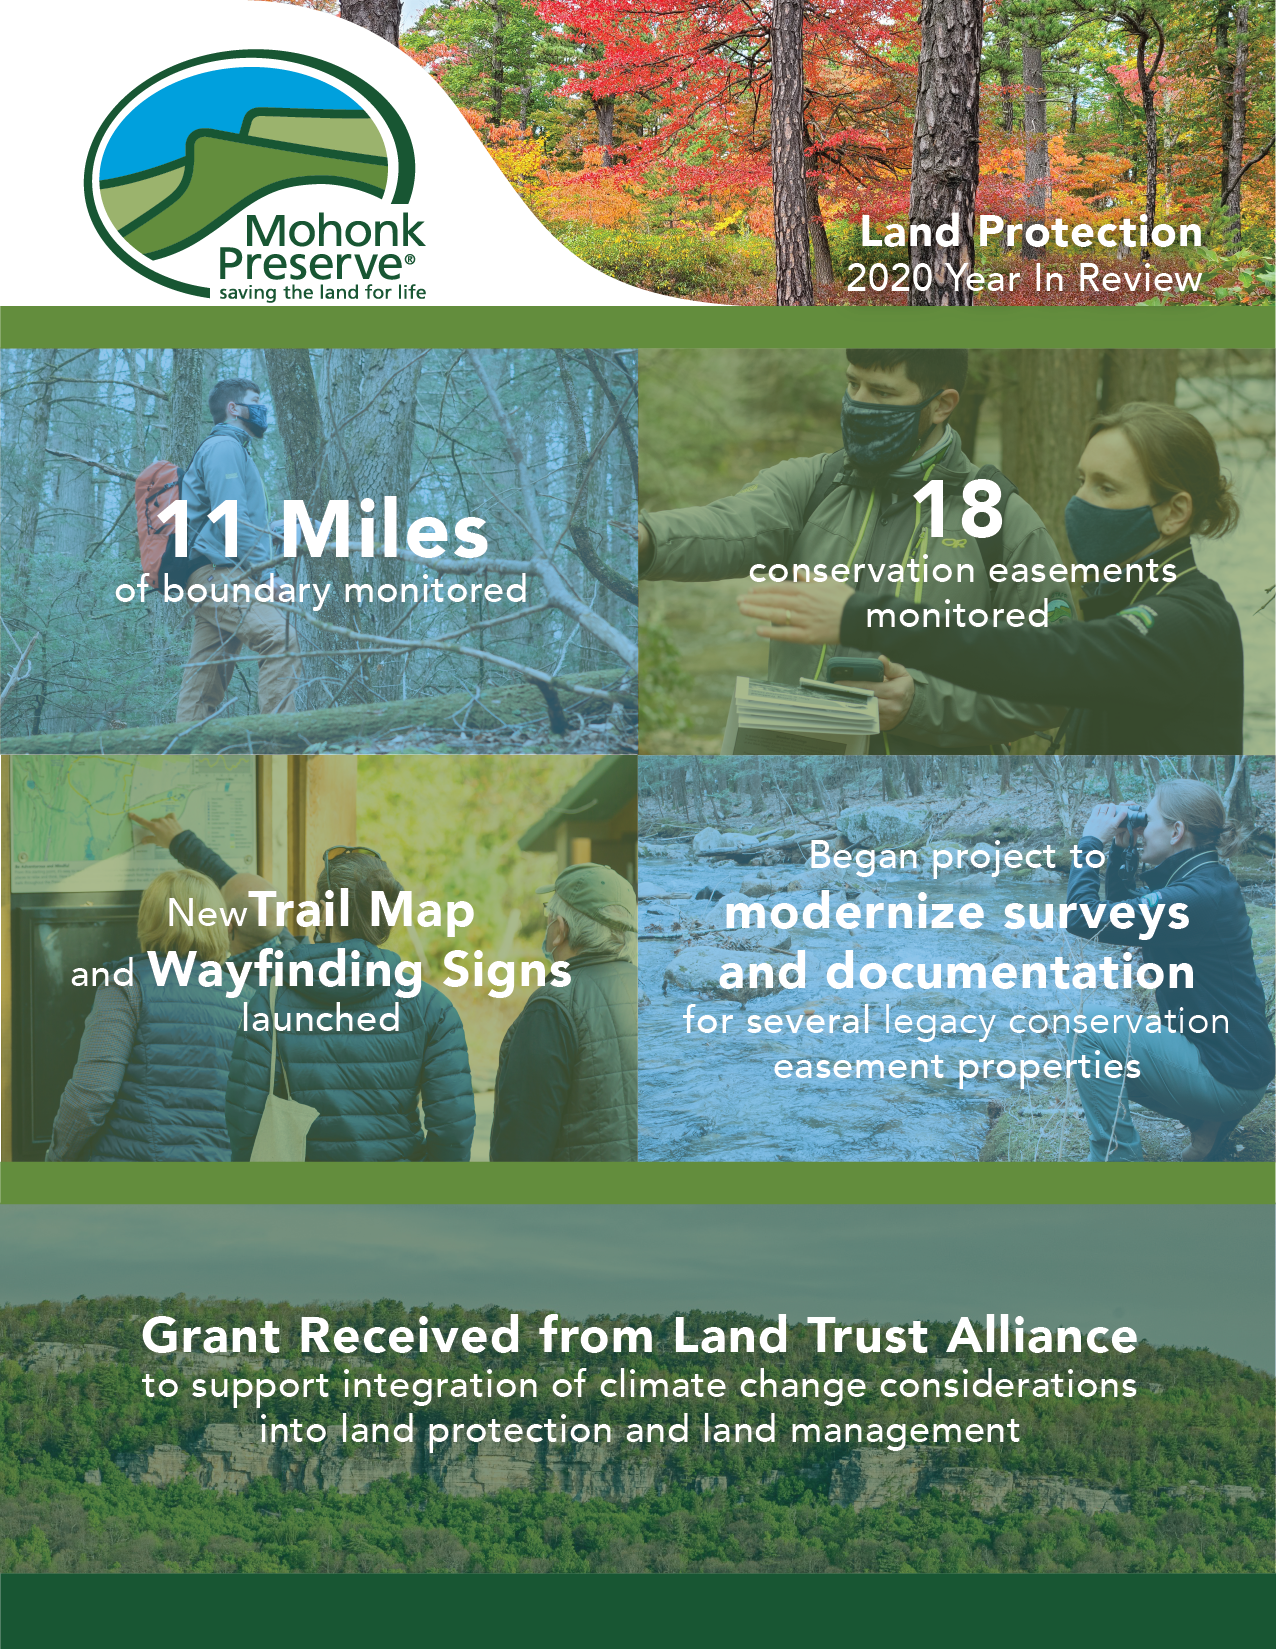 Land Protection: 2020 Year In Review; 11 Miles of boundary monitored; 18 conservation easements monitored; New trail map and wayfinding signs launched; Began project to modernize survey and documentation for several legacy conservation easement properties; Grant recieved from Land Trust Alliance to support integration of climate change considerations into land protection and land management.